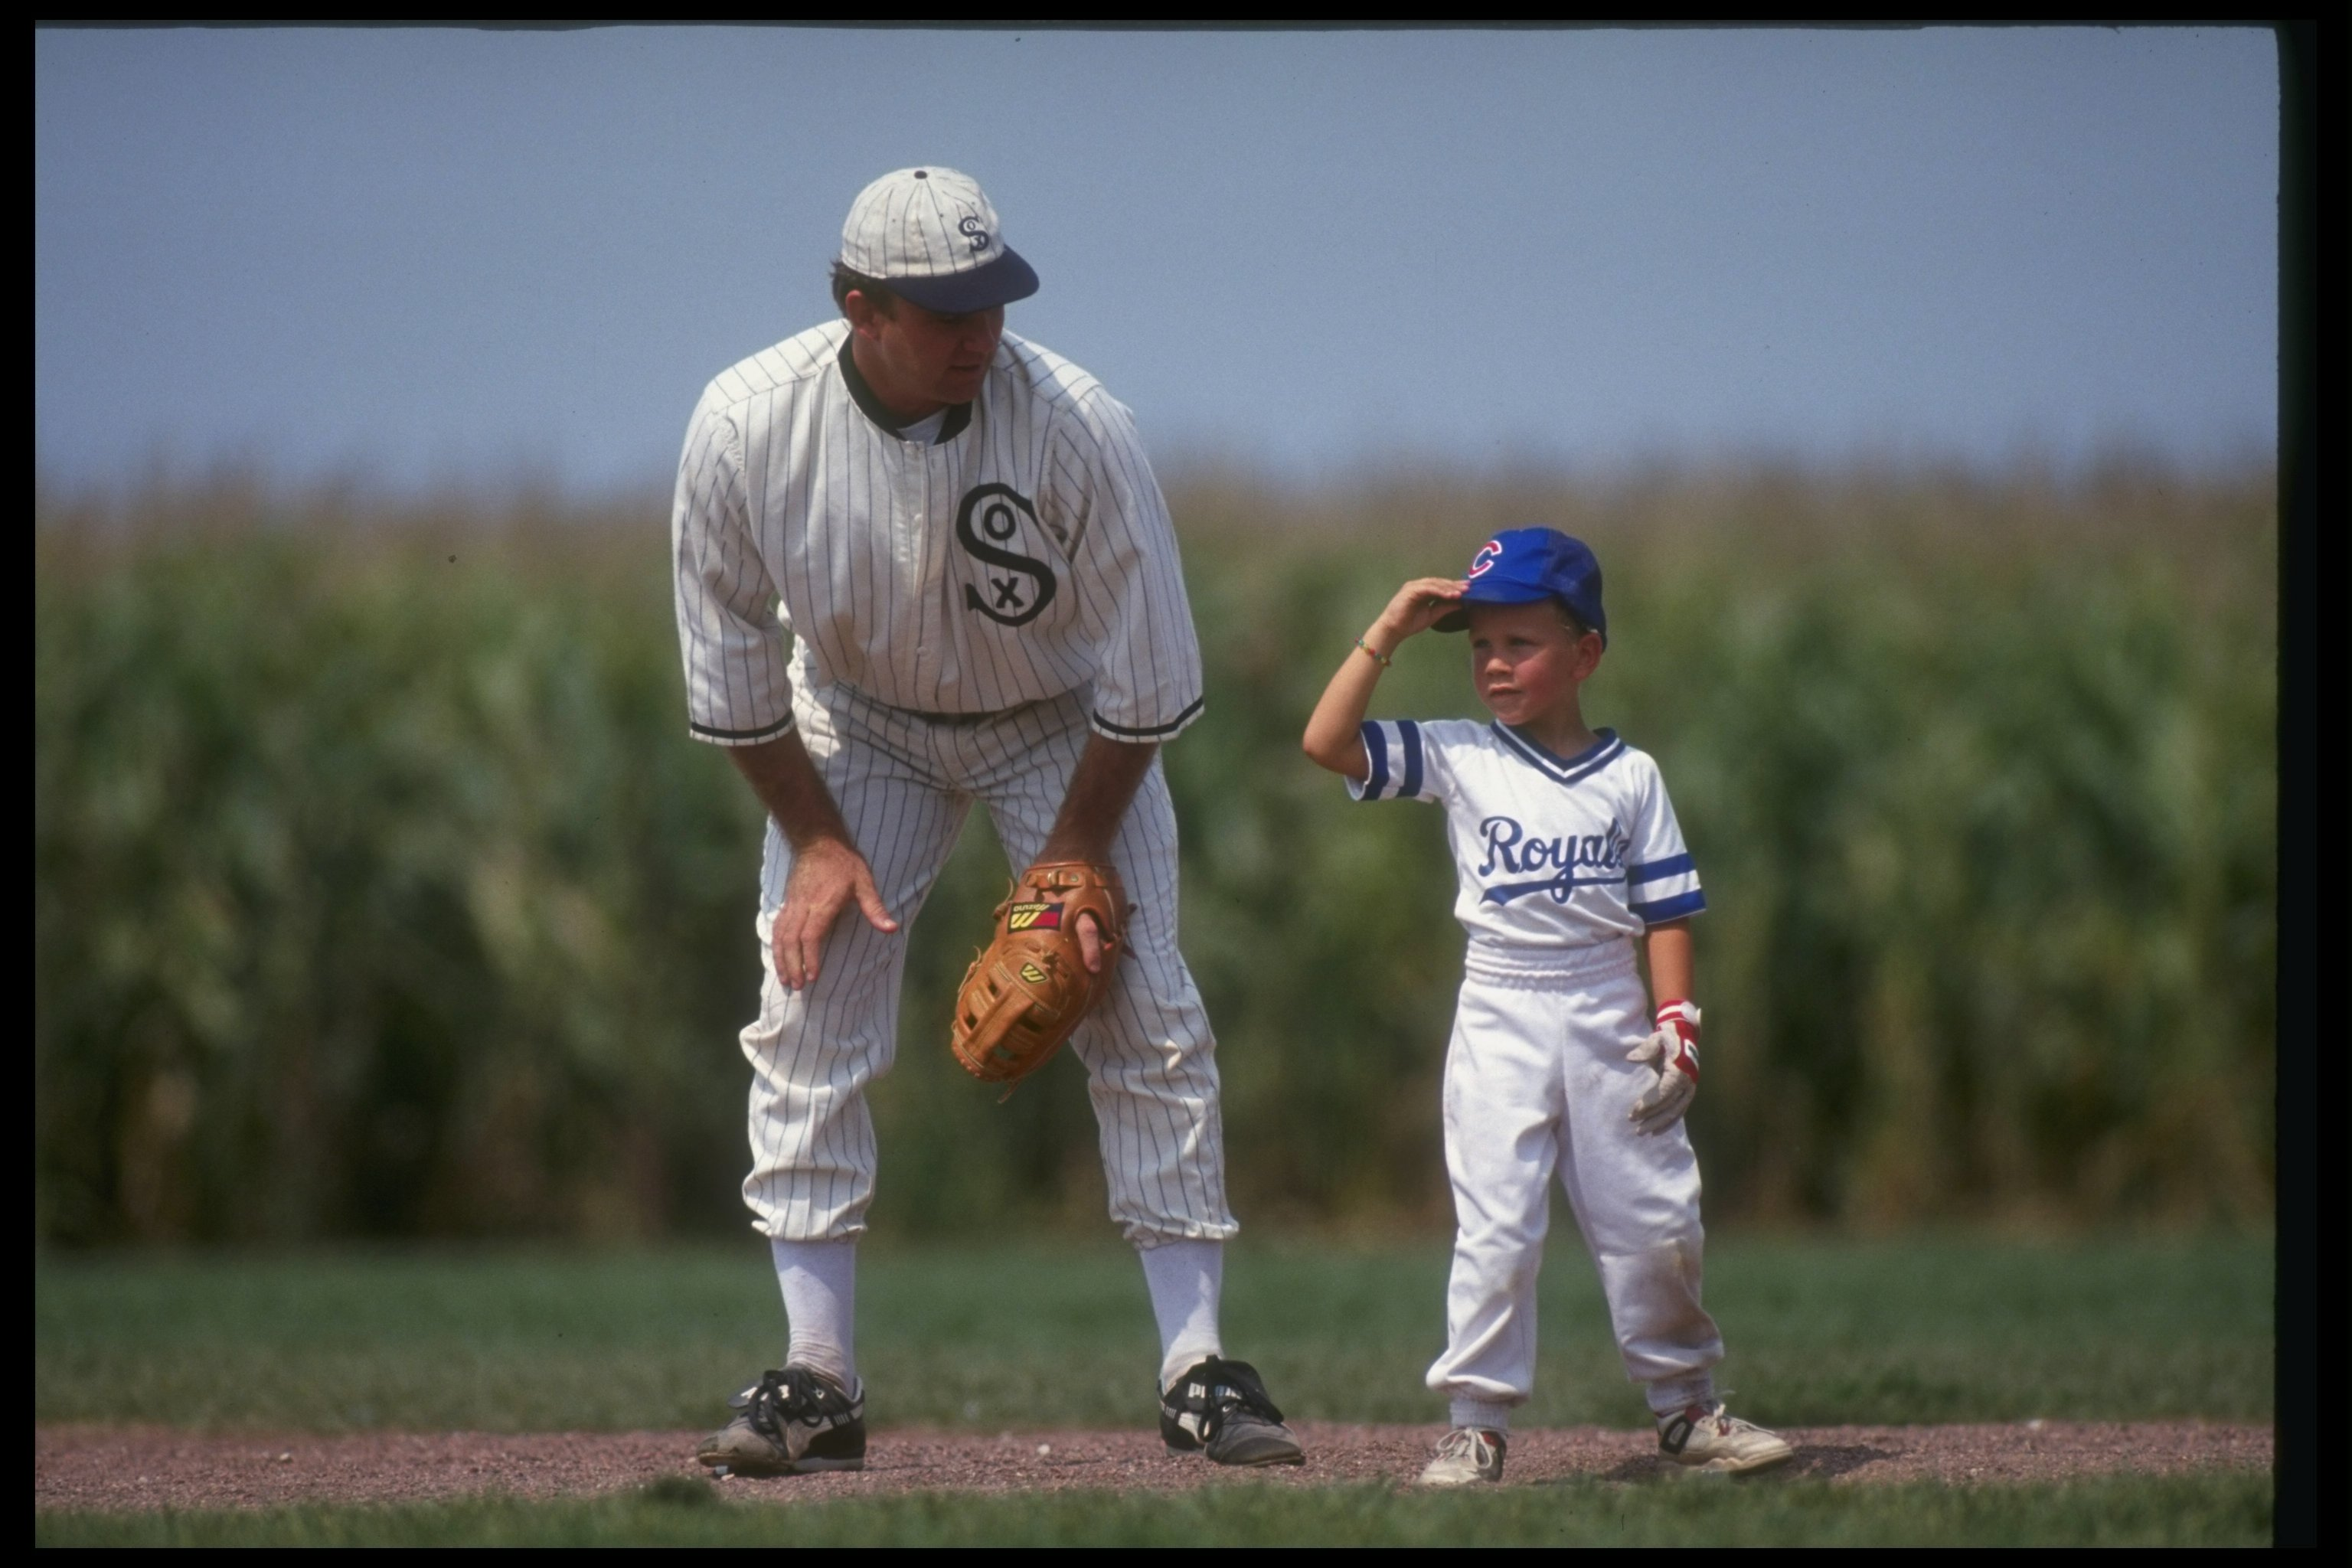 Film location for the movie 'Field of Dreams'